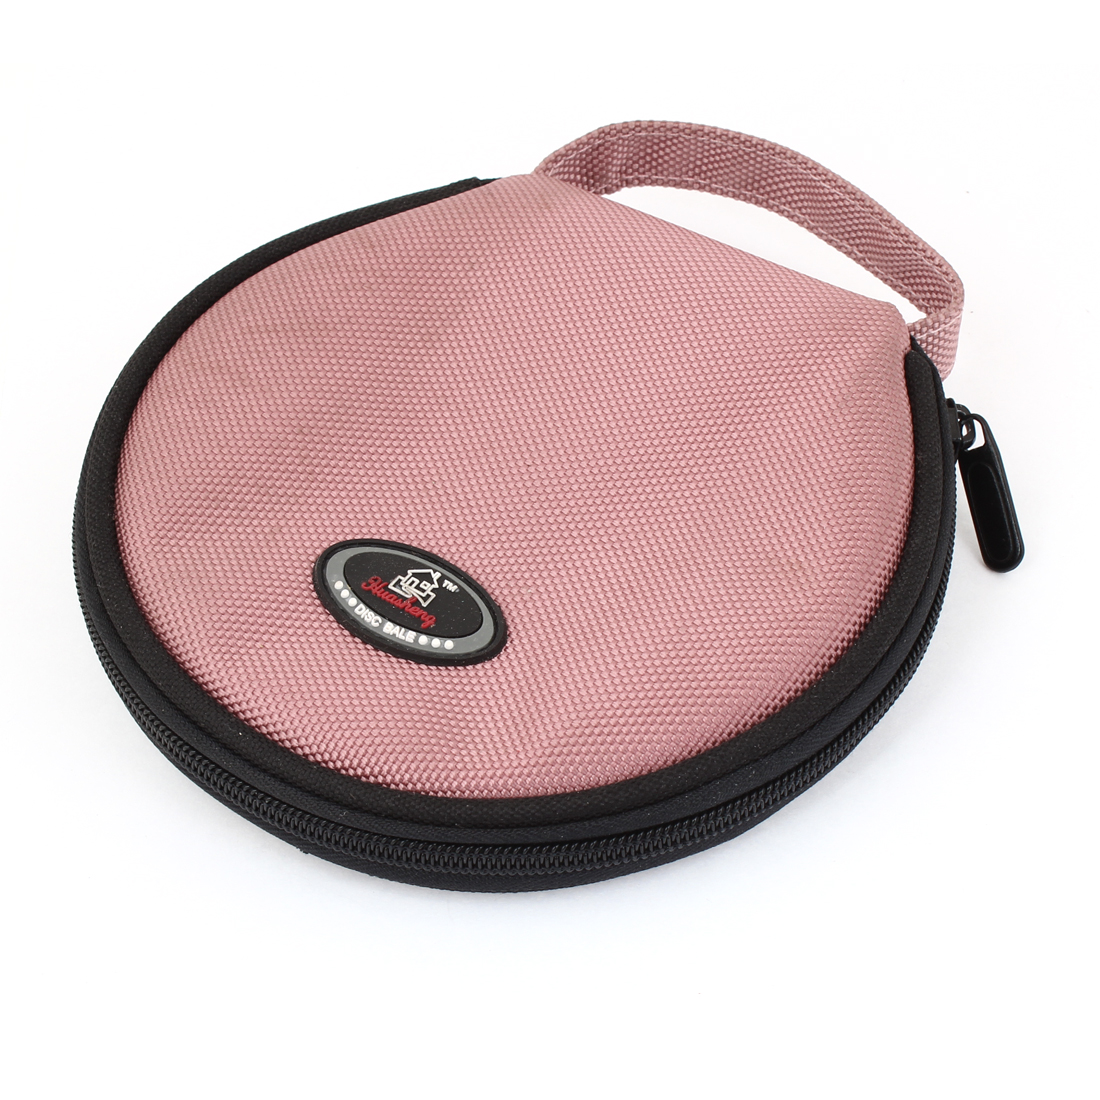 Zipper Closure Black Light Pink Nylon Shell 20 Capacity DVD CD Organizer Bag